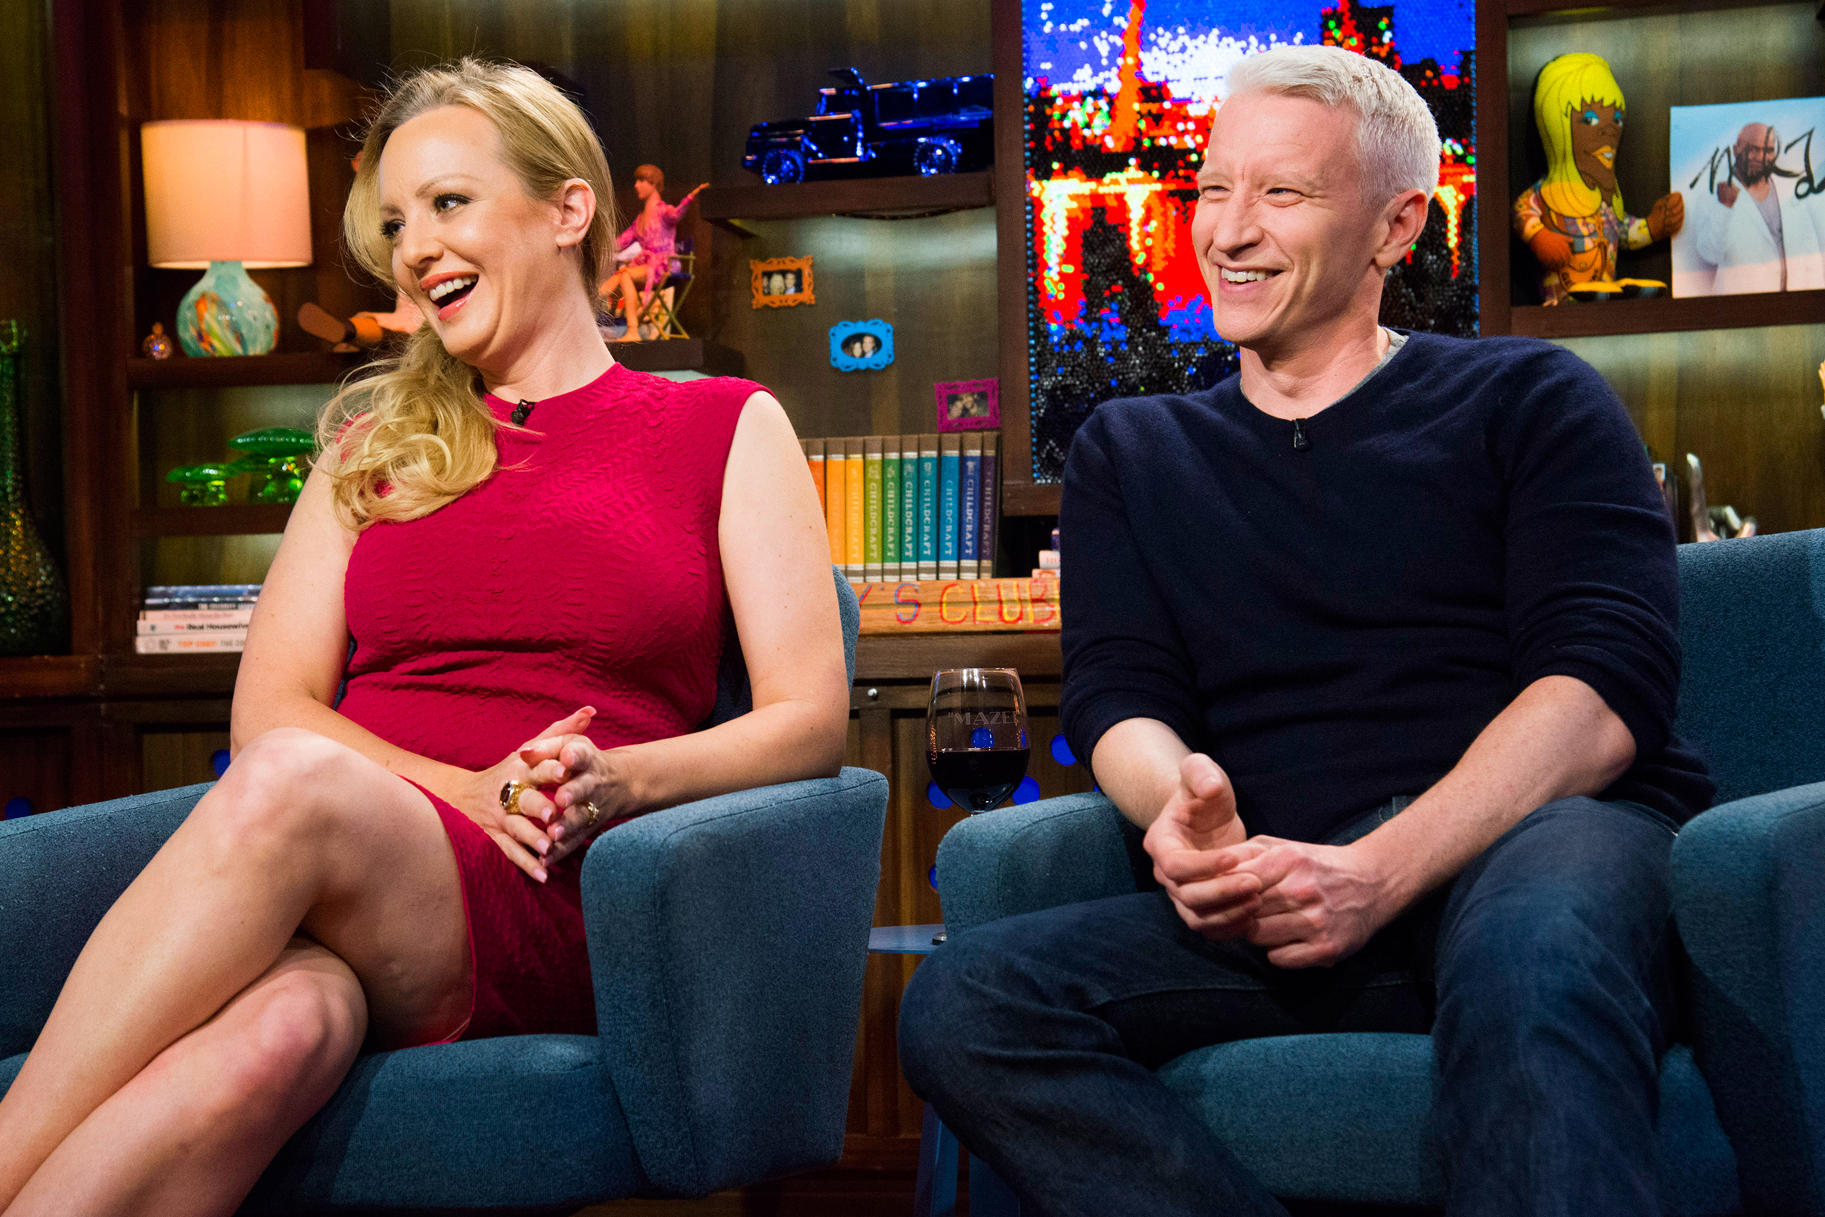 Anderson Cooper Nude Pics watch wendi mclendon-covey & anderson cooper | watch what